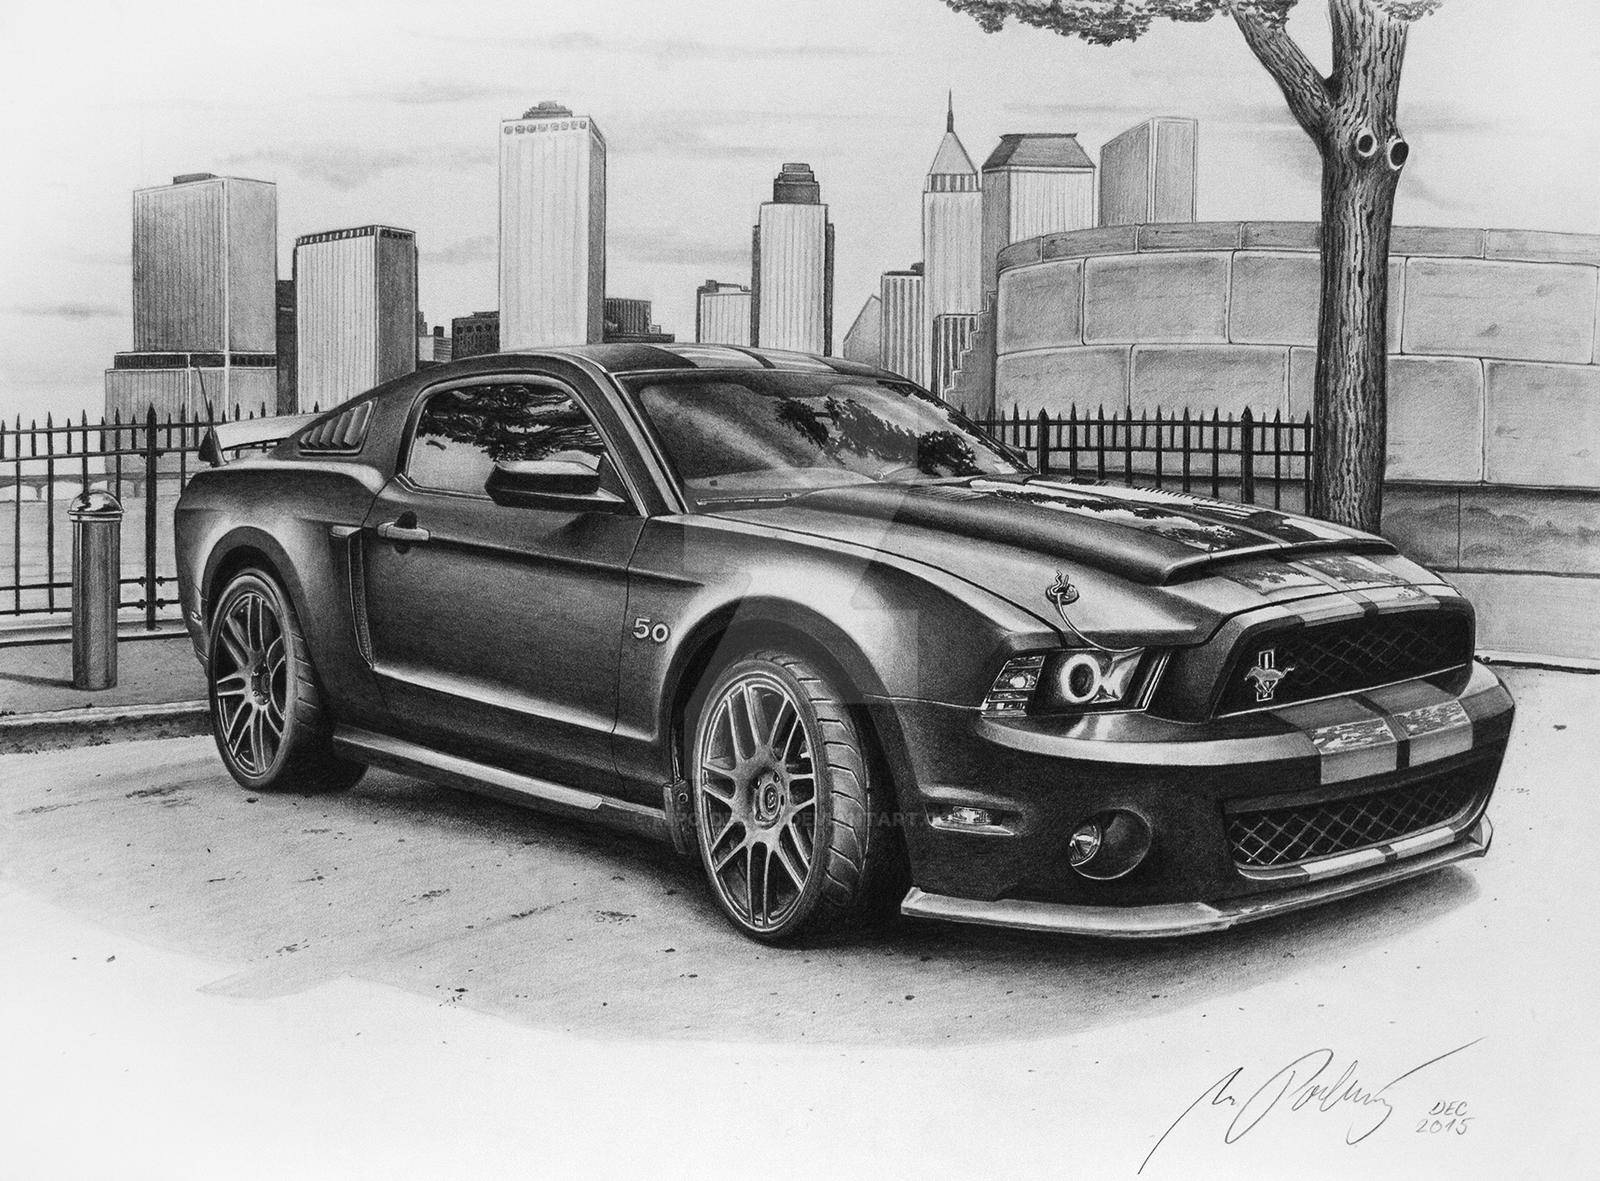 Realistic Automotive illustrations | SVTPerformance.com